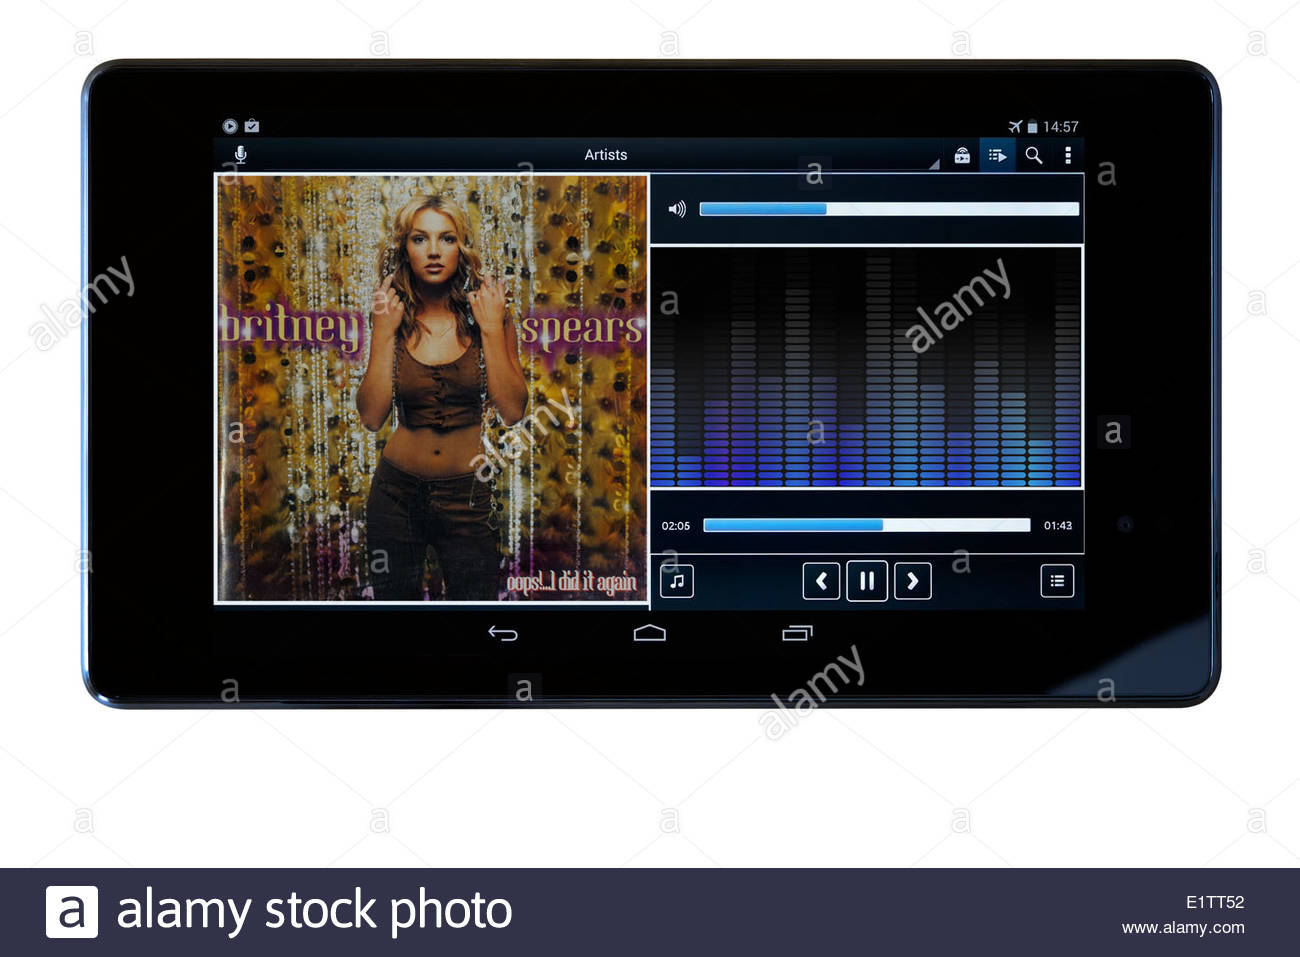 britney spears mp3